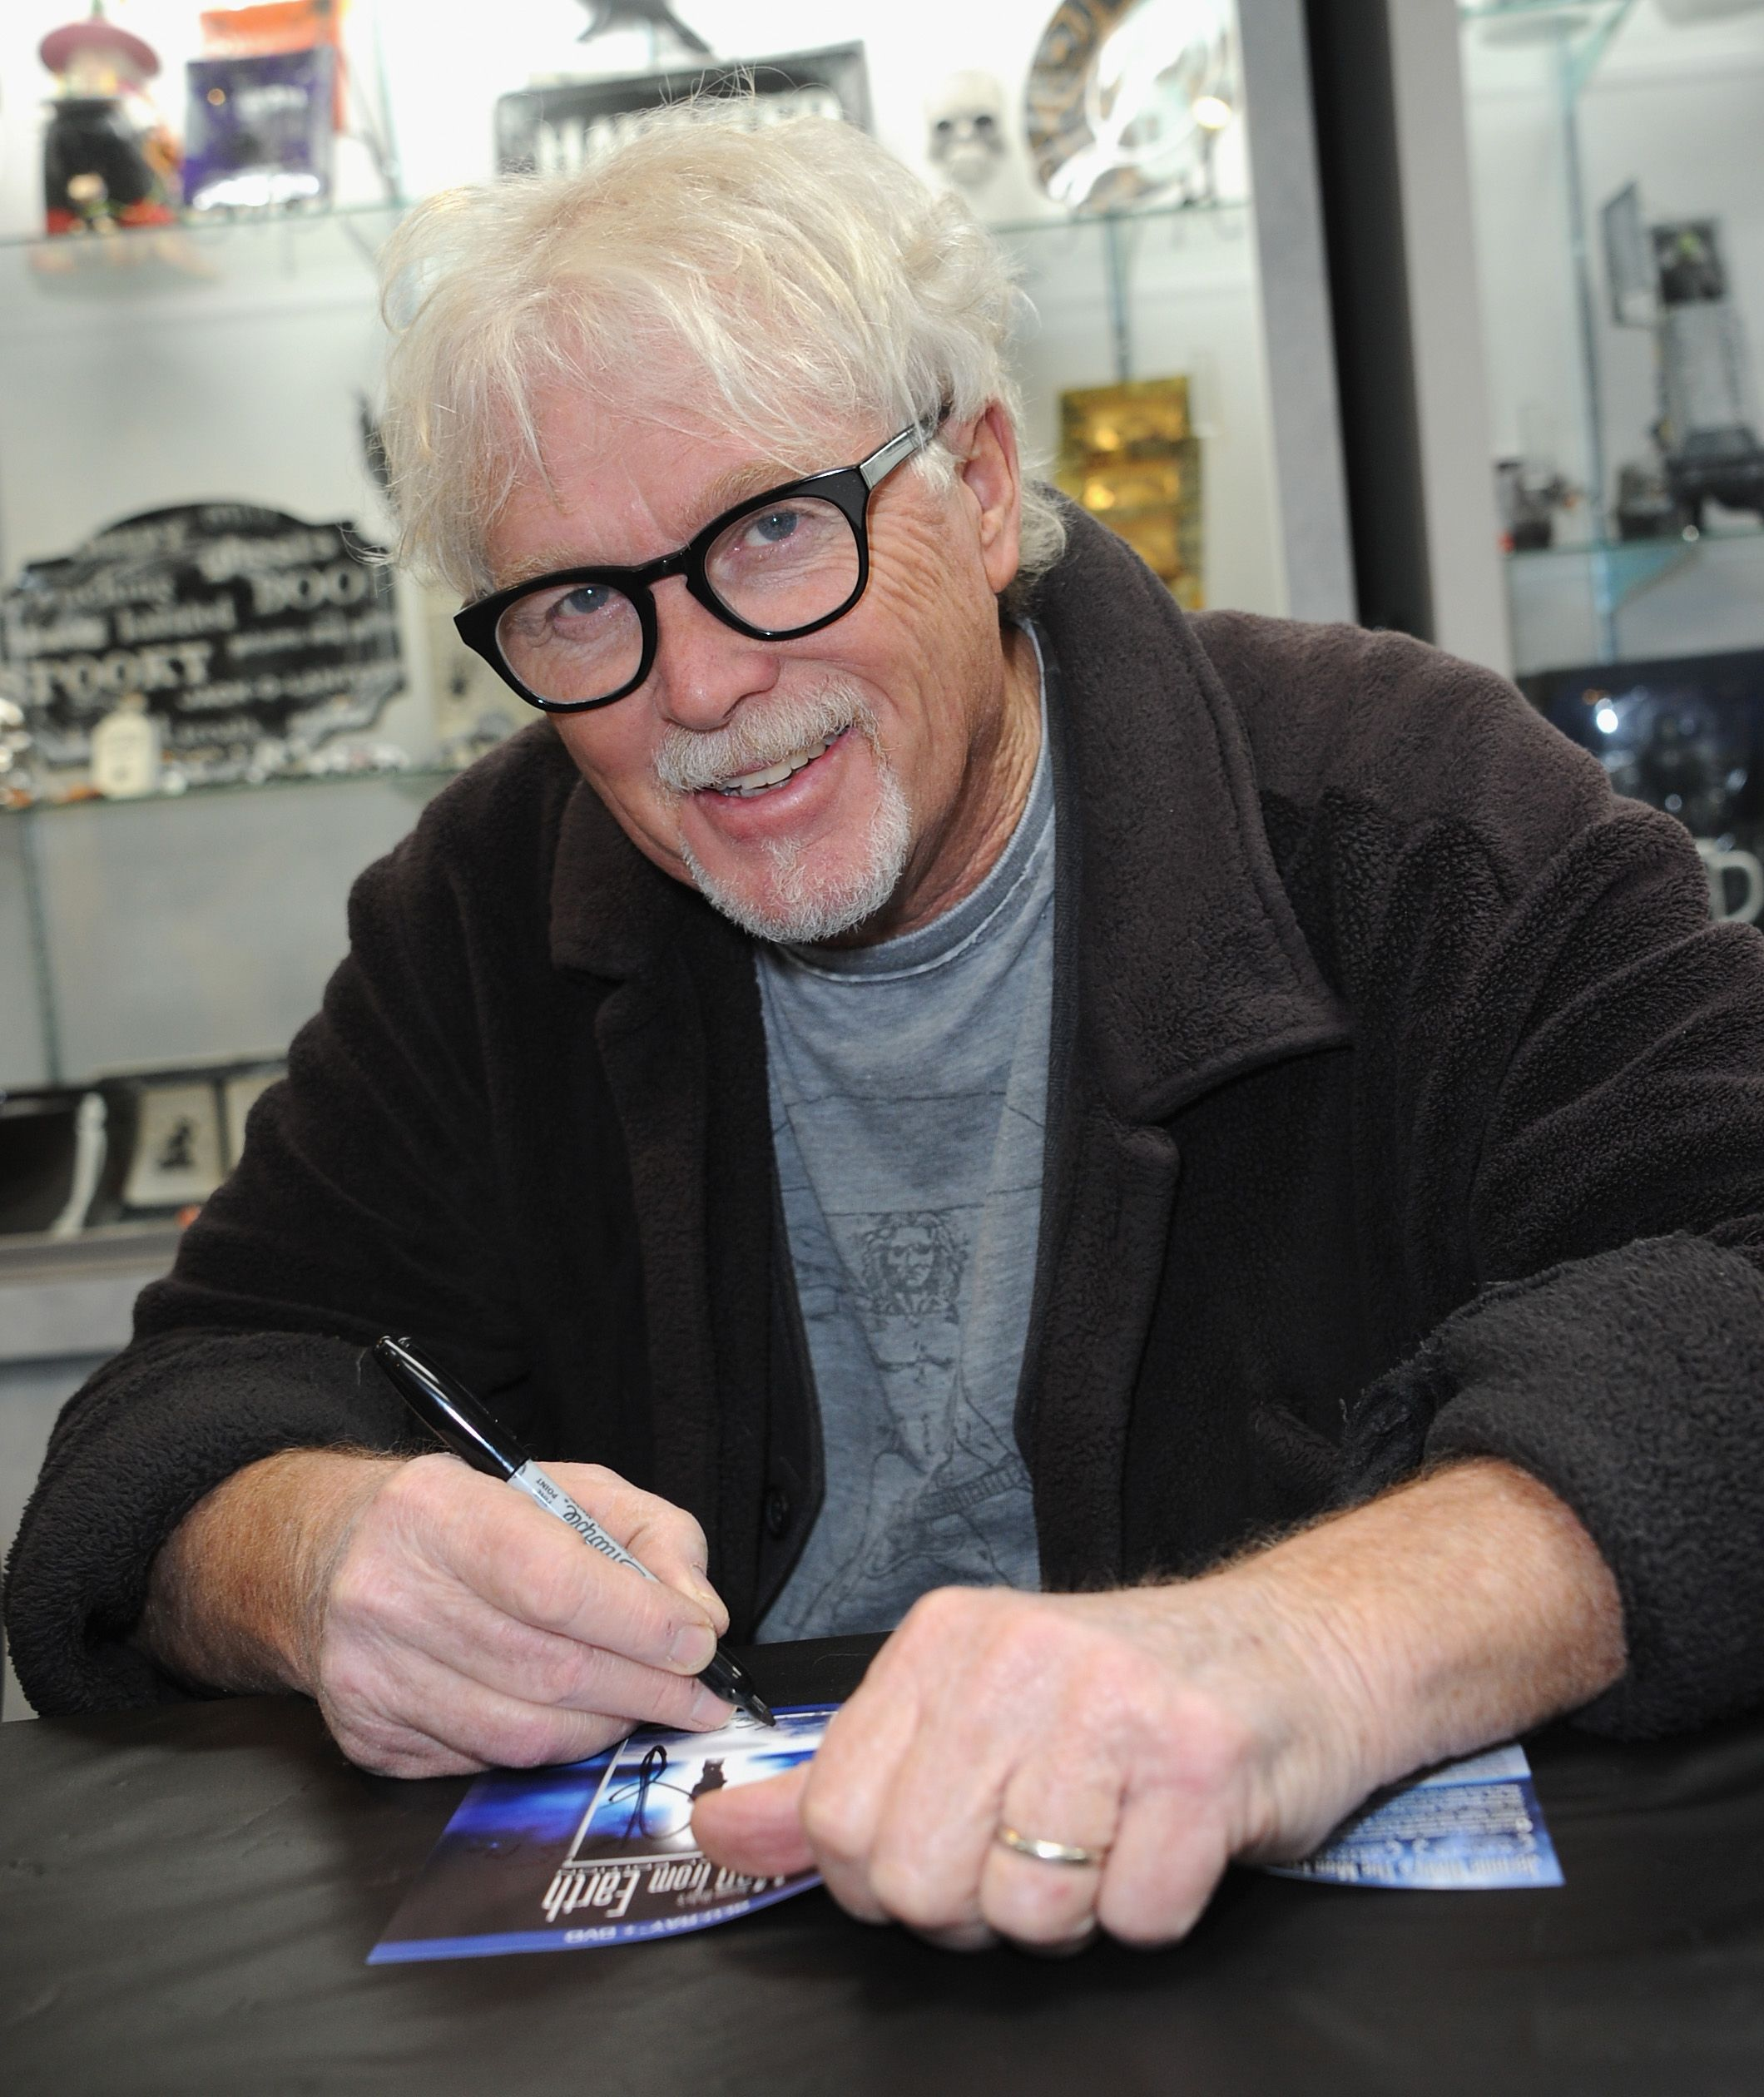 William Katt at The Man From Earth signing held at Dark Delicacies Bookstore on March 7, 2018 in Burbank, California | Photo: Getty Images